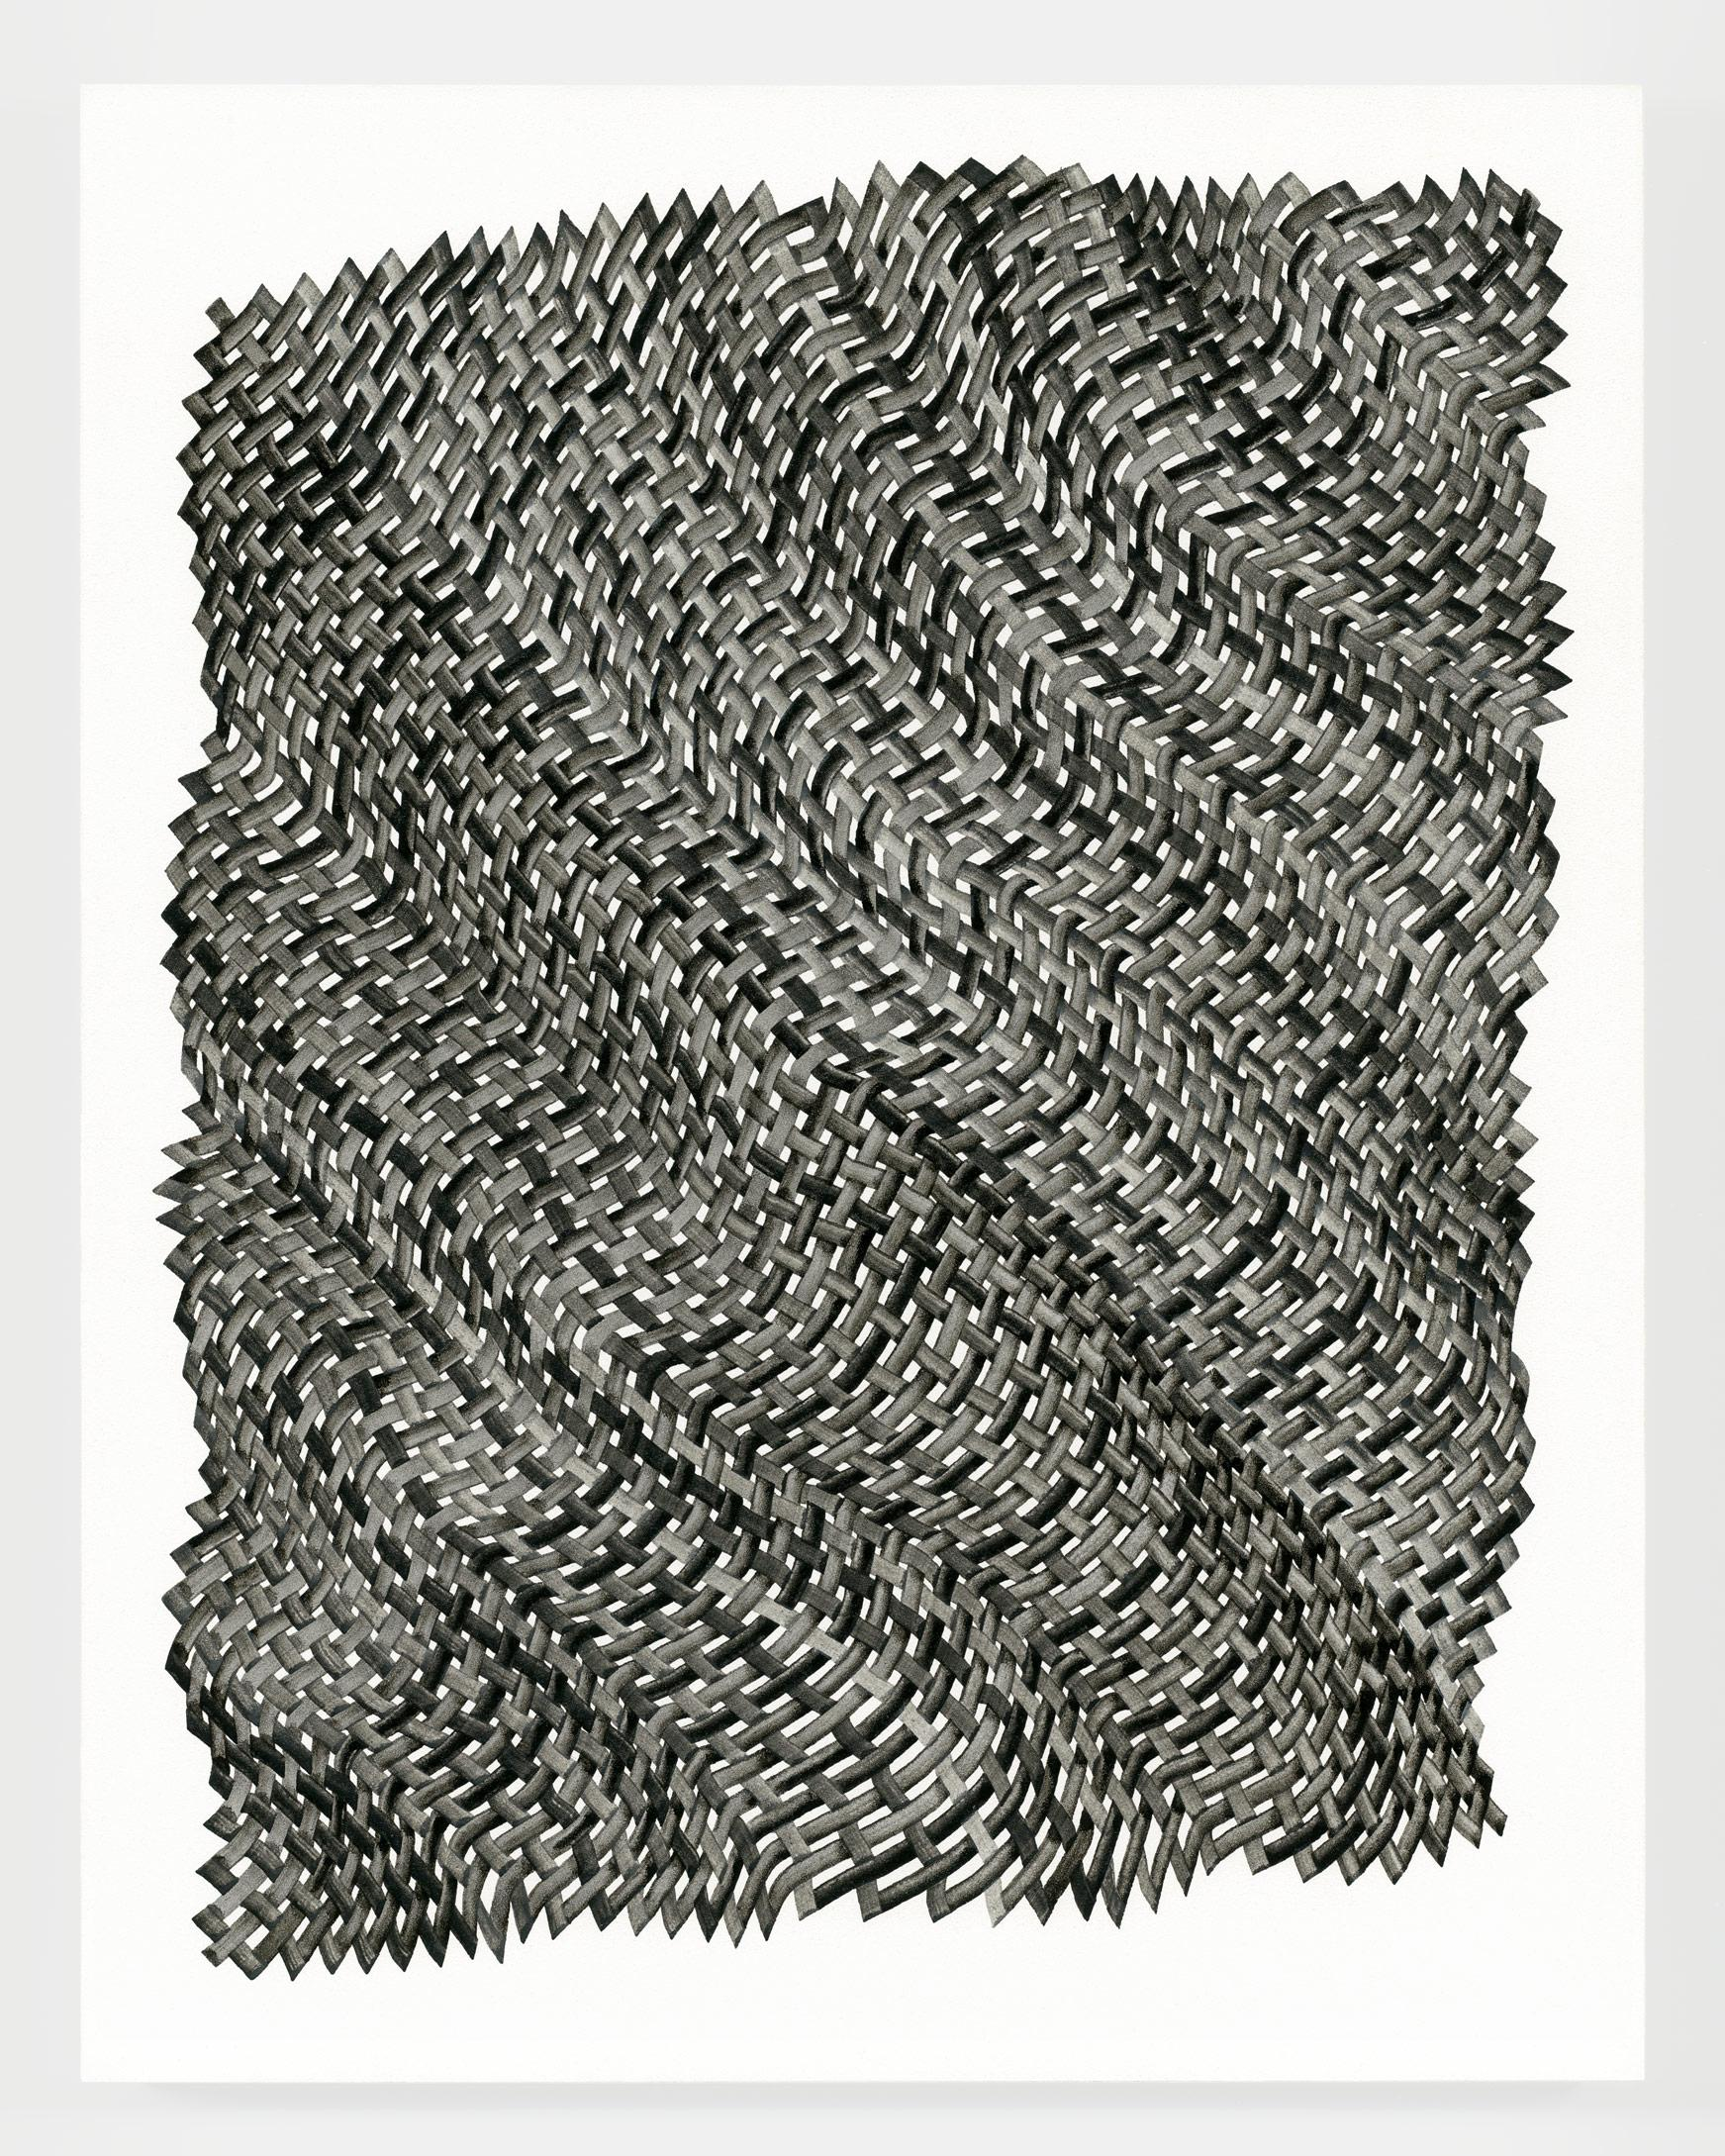 Woven lines 49 - abstract geometric black grey dominant ink drawing on paper